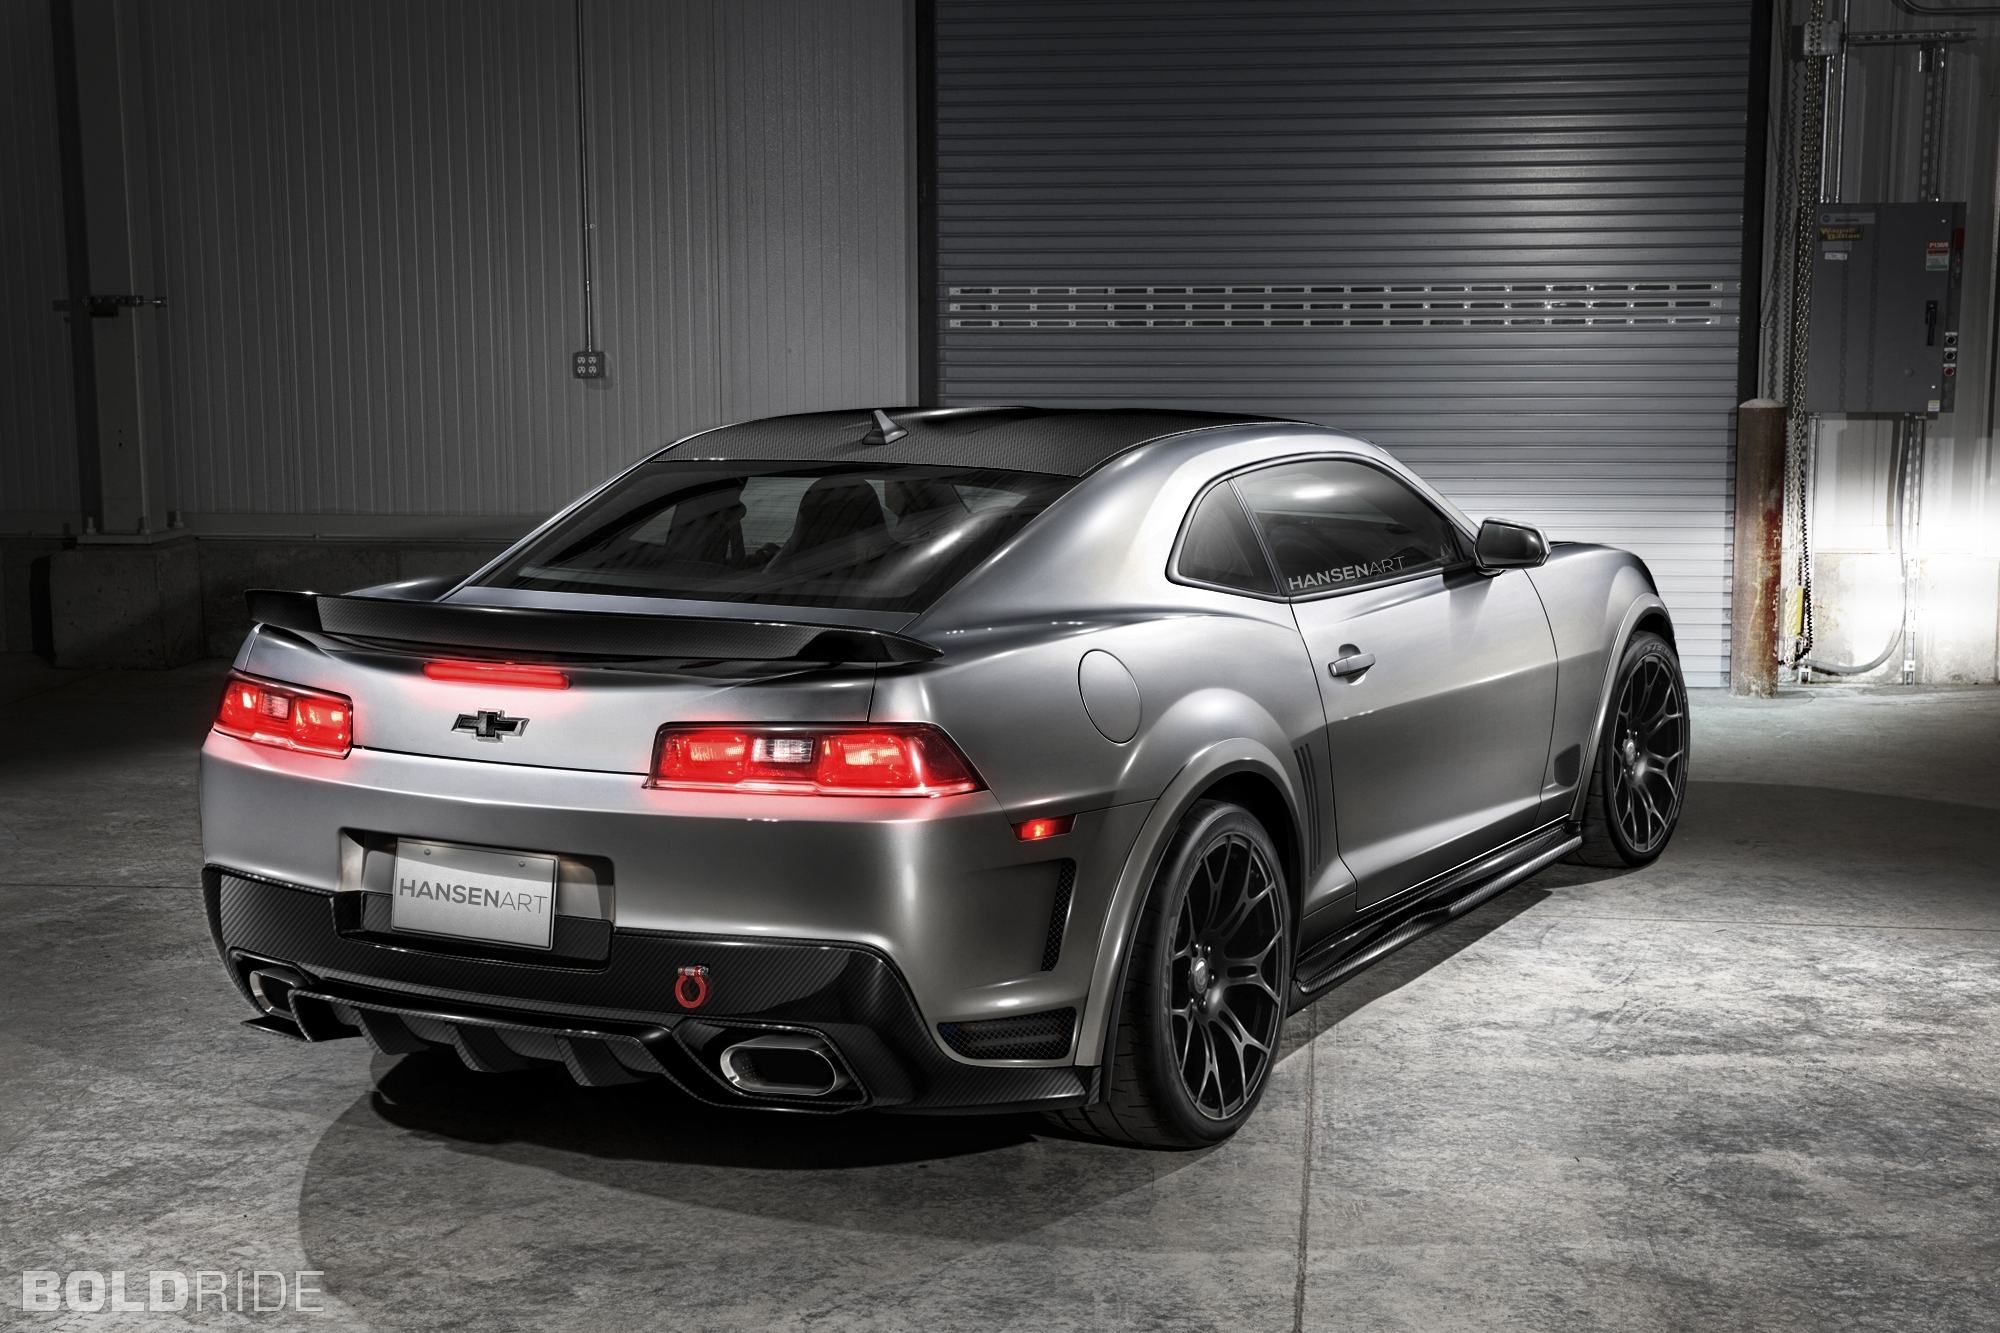 2014 chevrolet camaro carbon line concept muscle cars tuning q wallpaper 2000x1333 79133 wallpaperup - 2014 Camaro Wallpaper